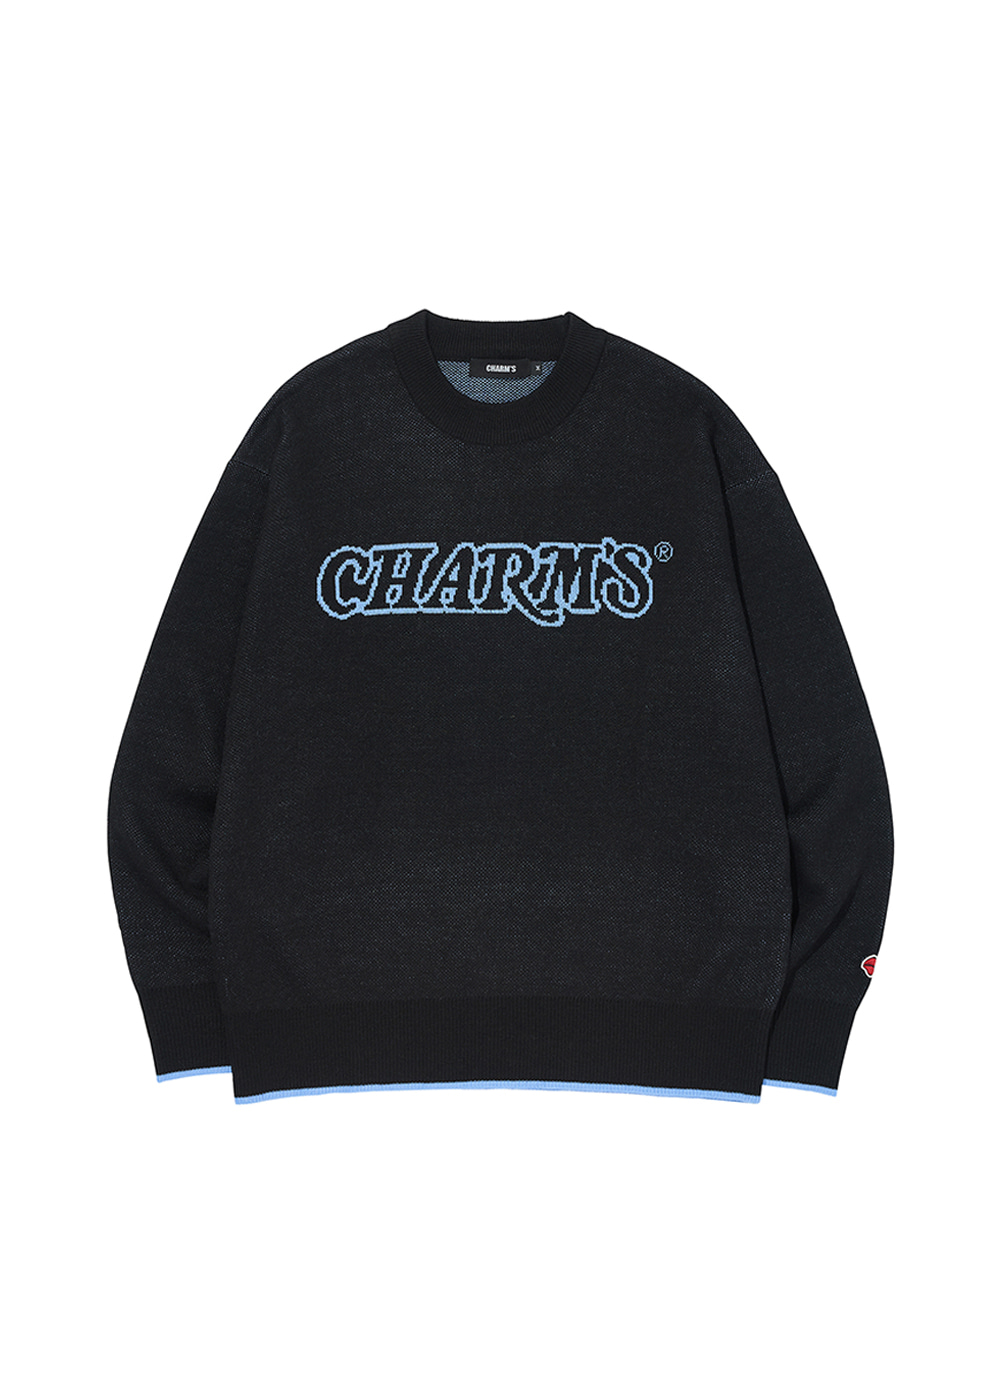 CHARMS WAVE LOGO KNIT BK